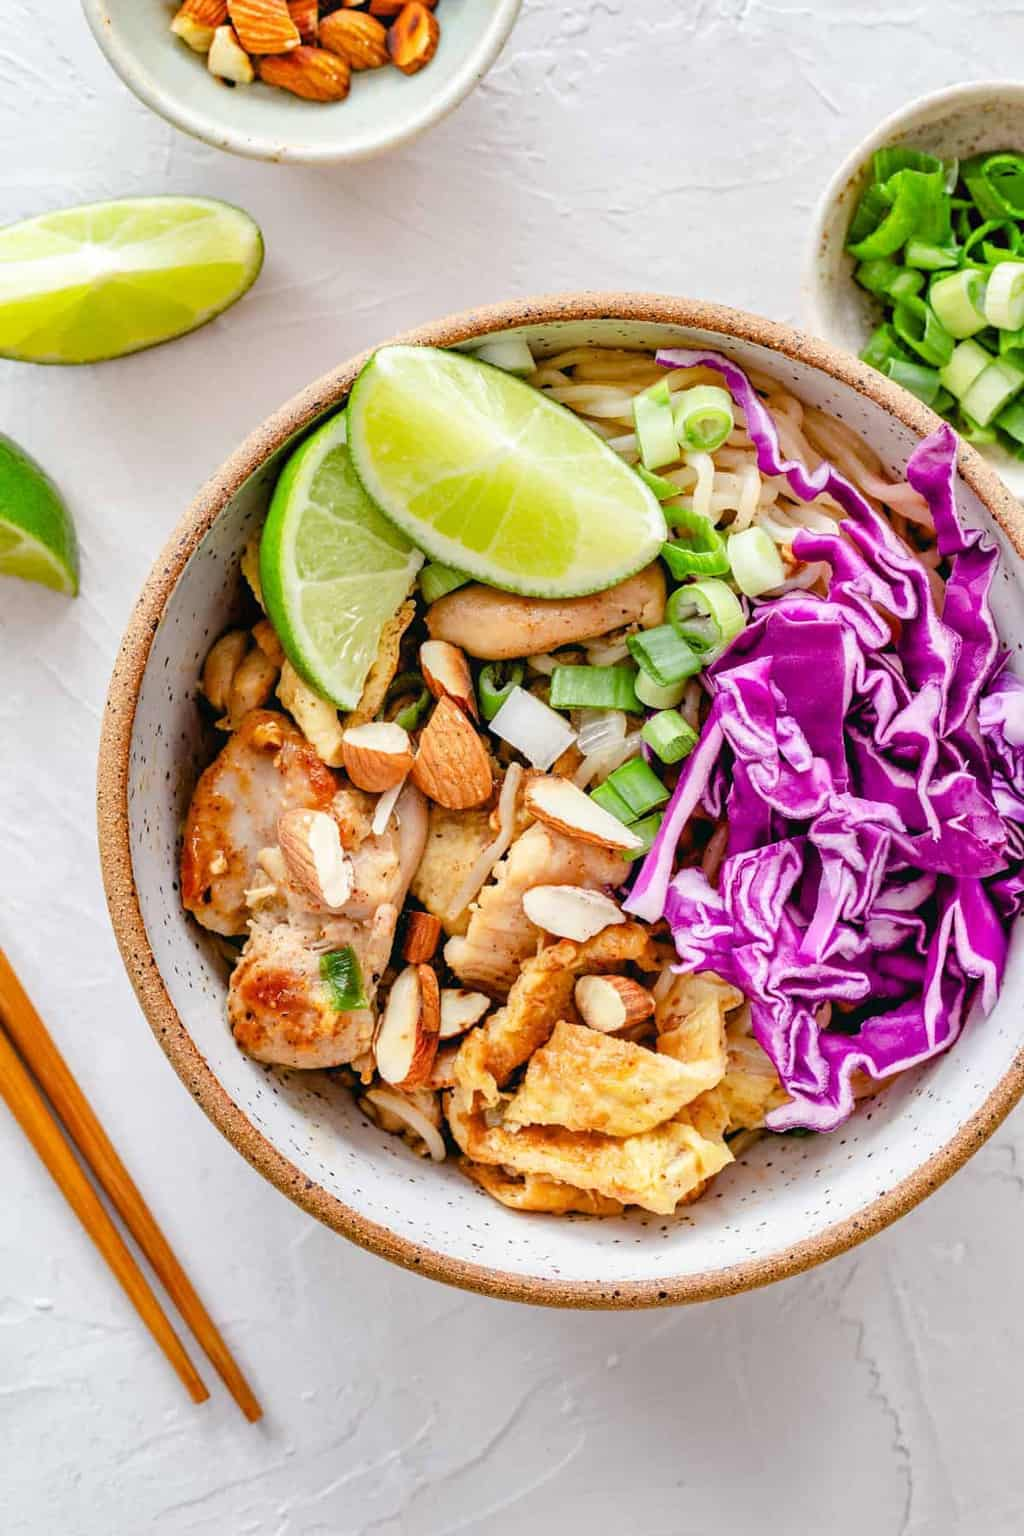 Keto Pad Thai + The Trick to Making Shirataki Noodles Appetizing